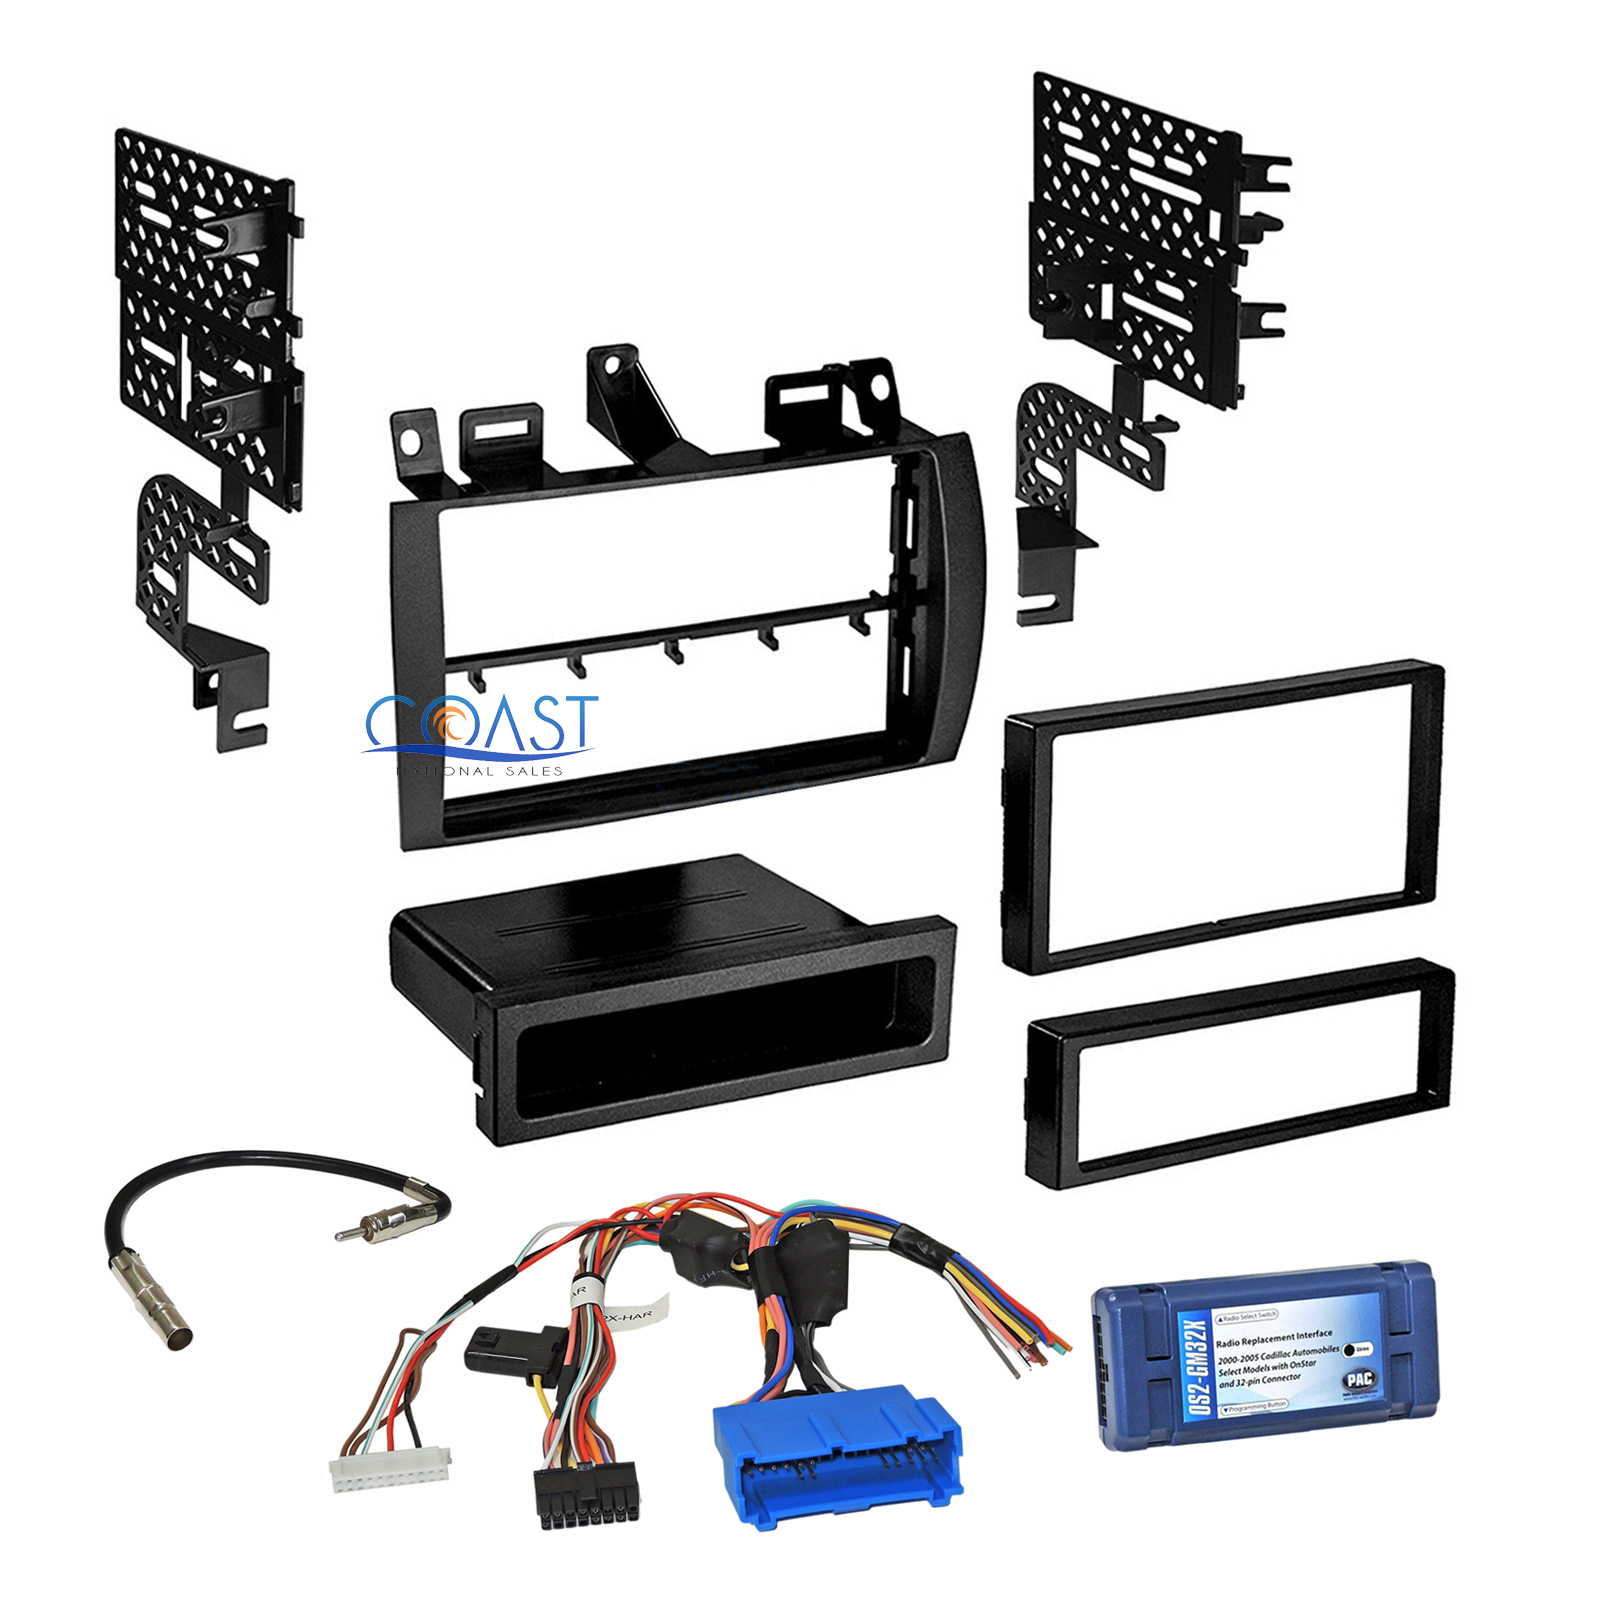 Details about Car Radio Stereo Dash Kit Bose OnStar Interface for Cadillac  Deville Eldorado